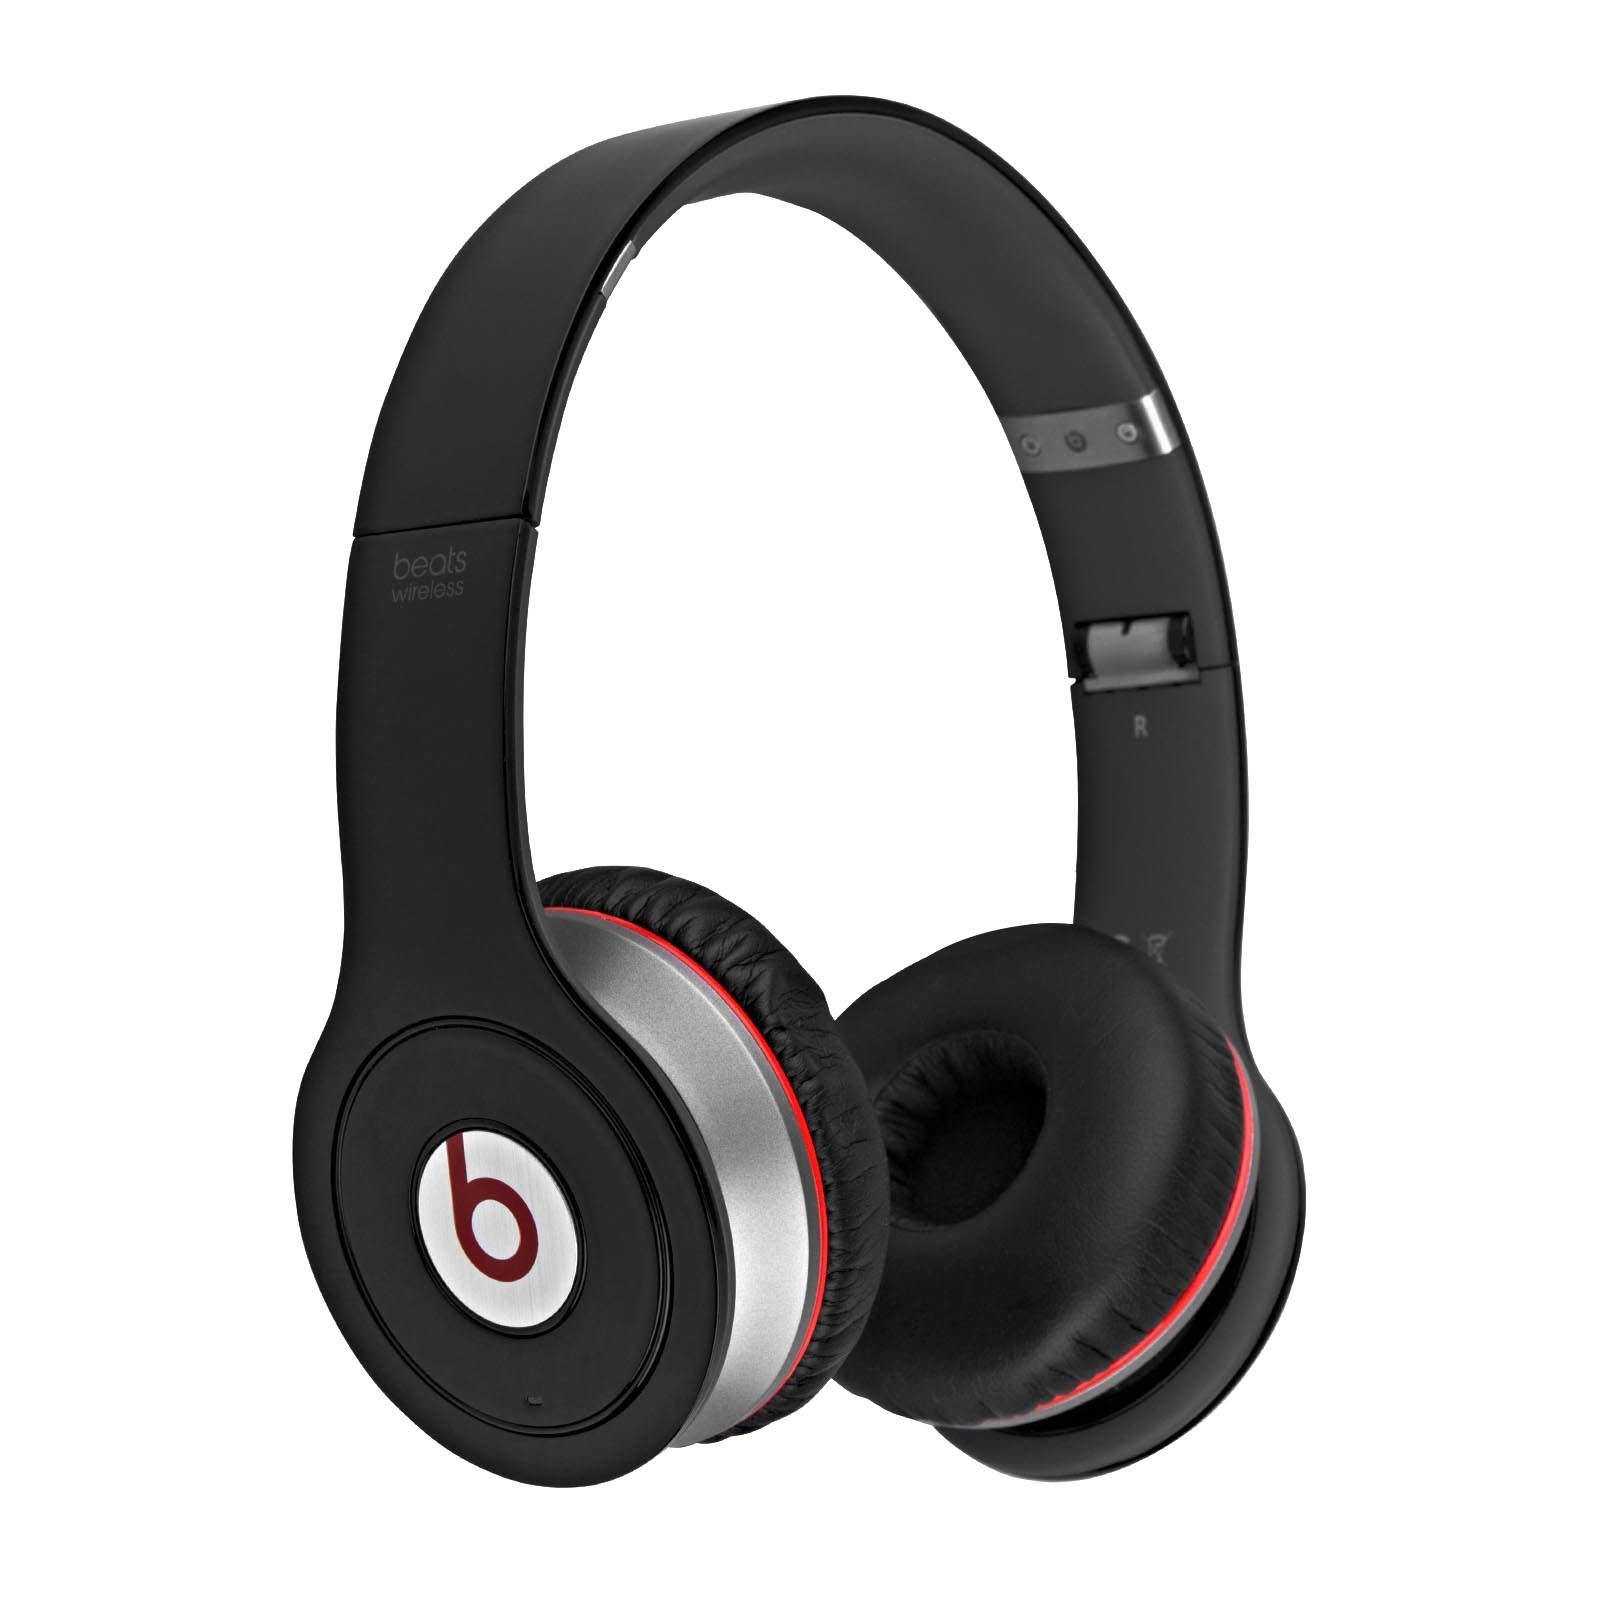 Beats headphones wireless noise cancelling - beats wireless headphones case